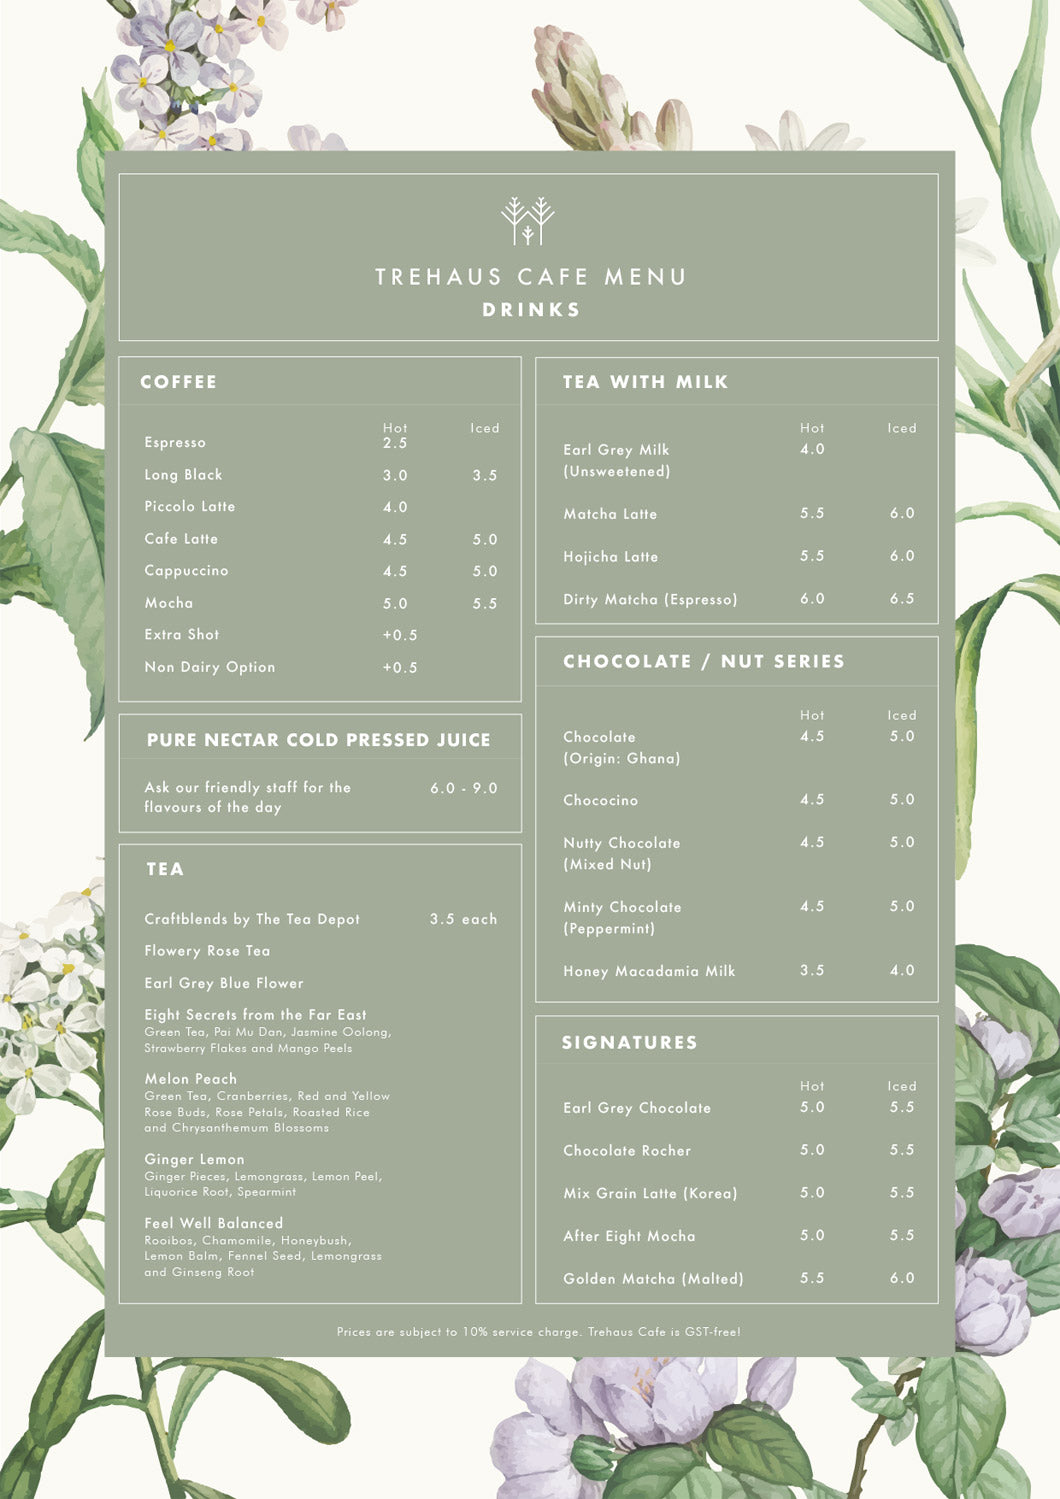 Trehaus Cafe drinks menu